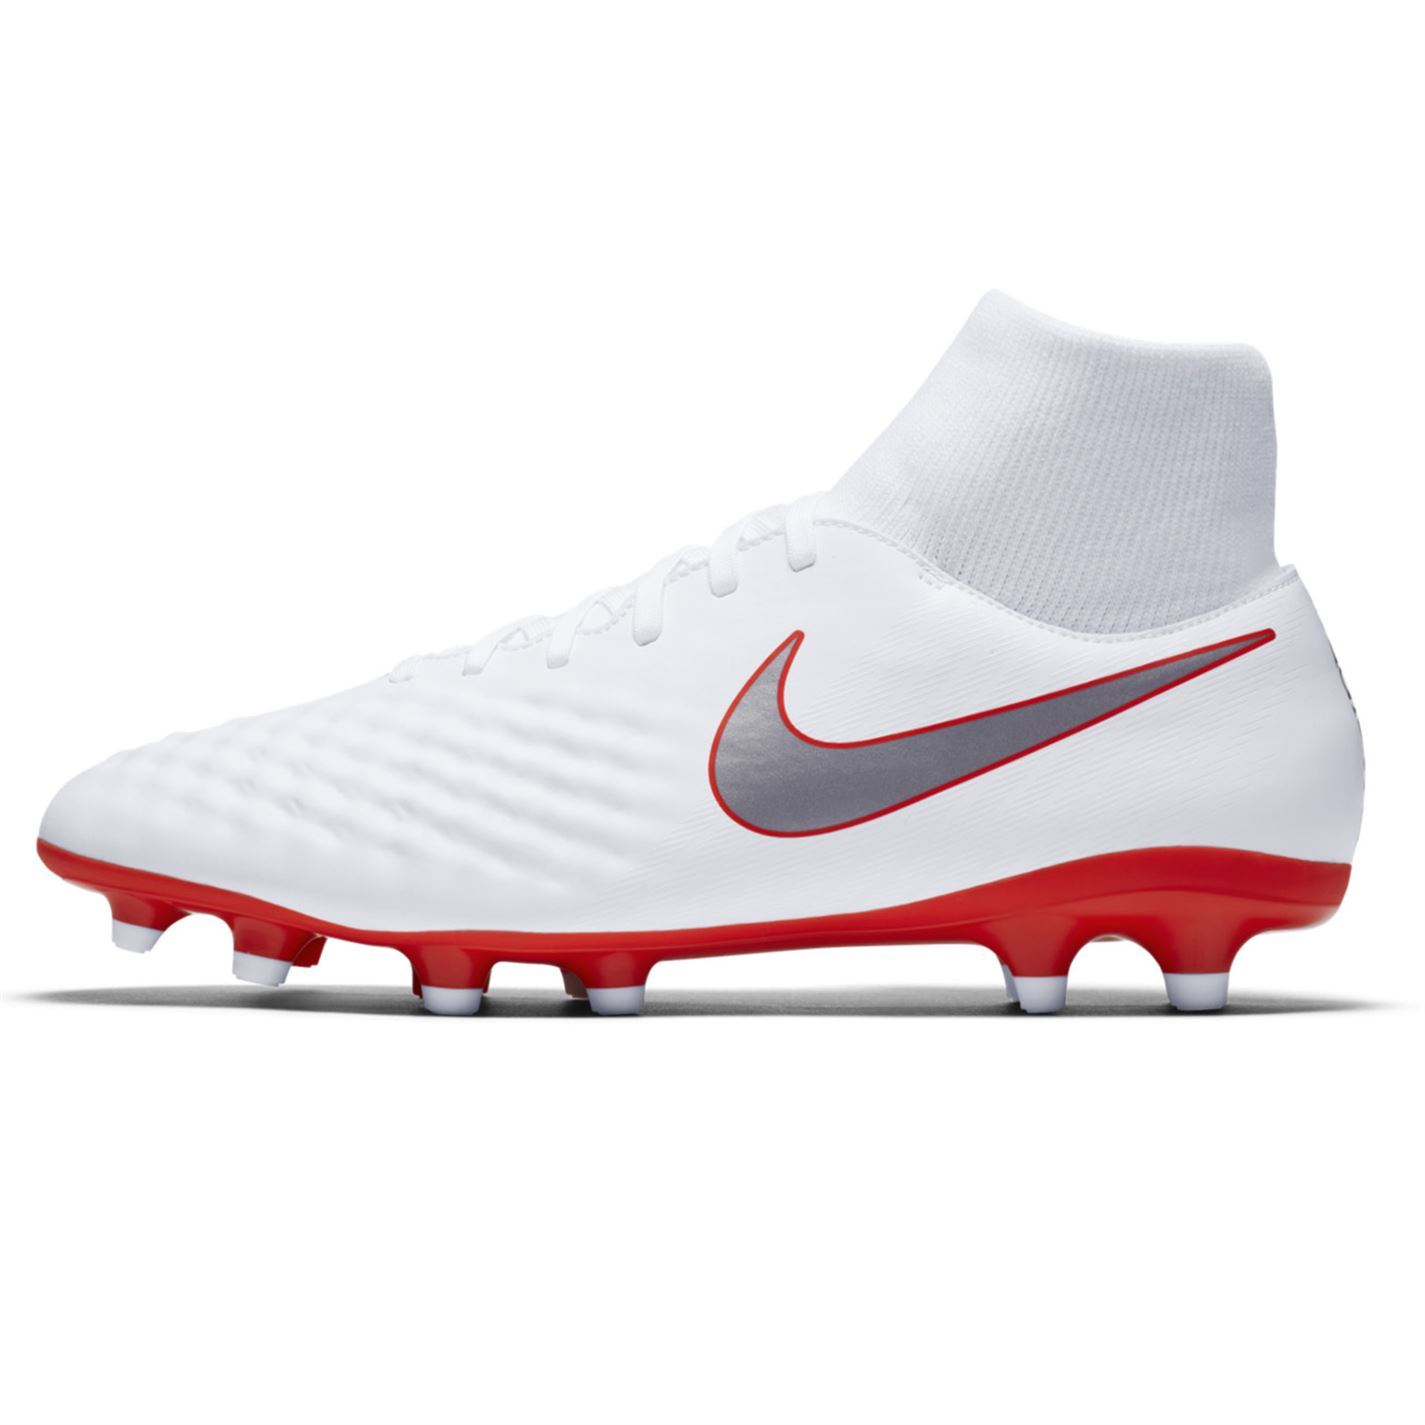 tout neuf 98d26 021a7 Details about Nike Magista Obra Academy DF Firm Ground Football Boots Mens  White Soccer Cleats